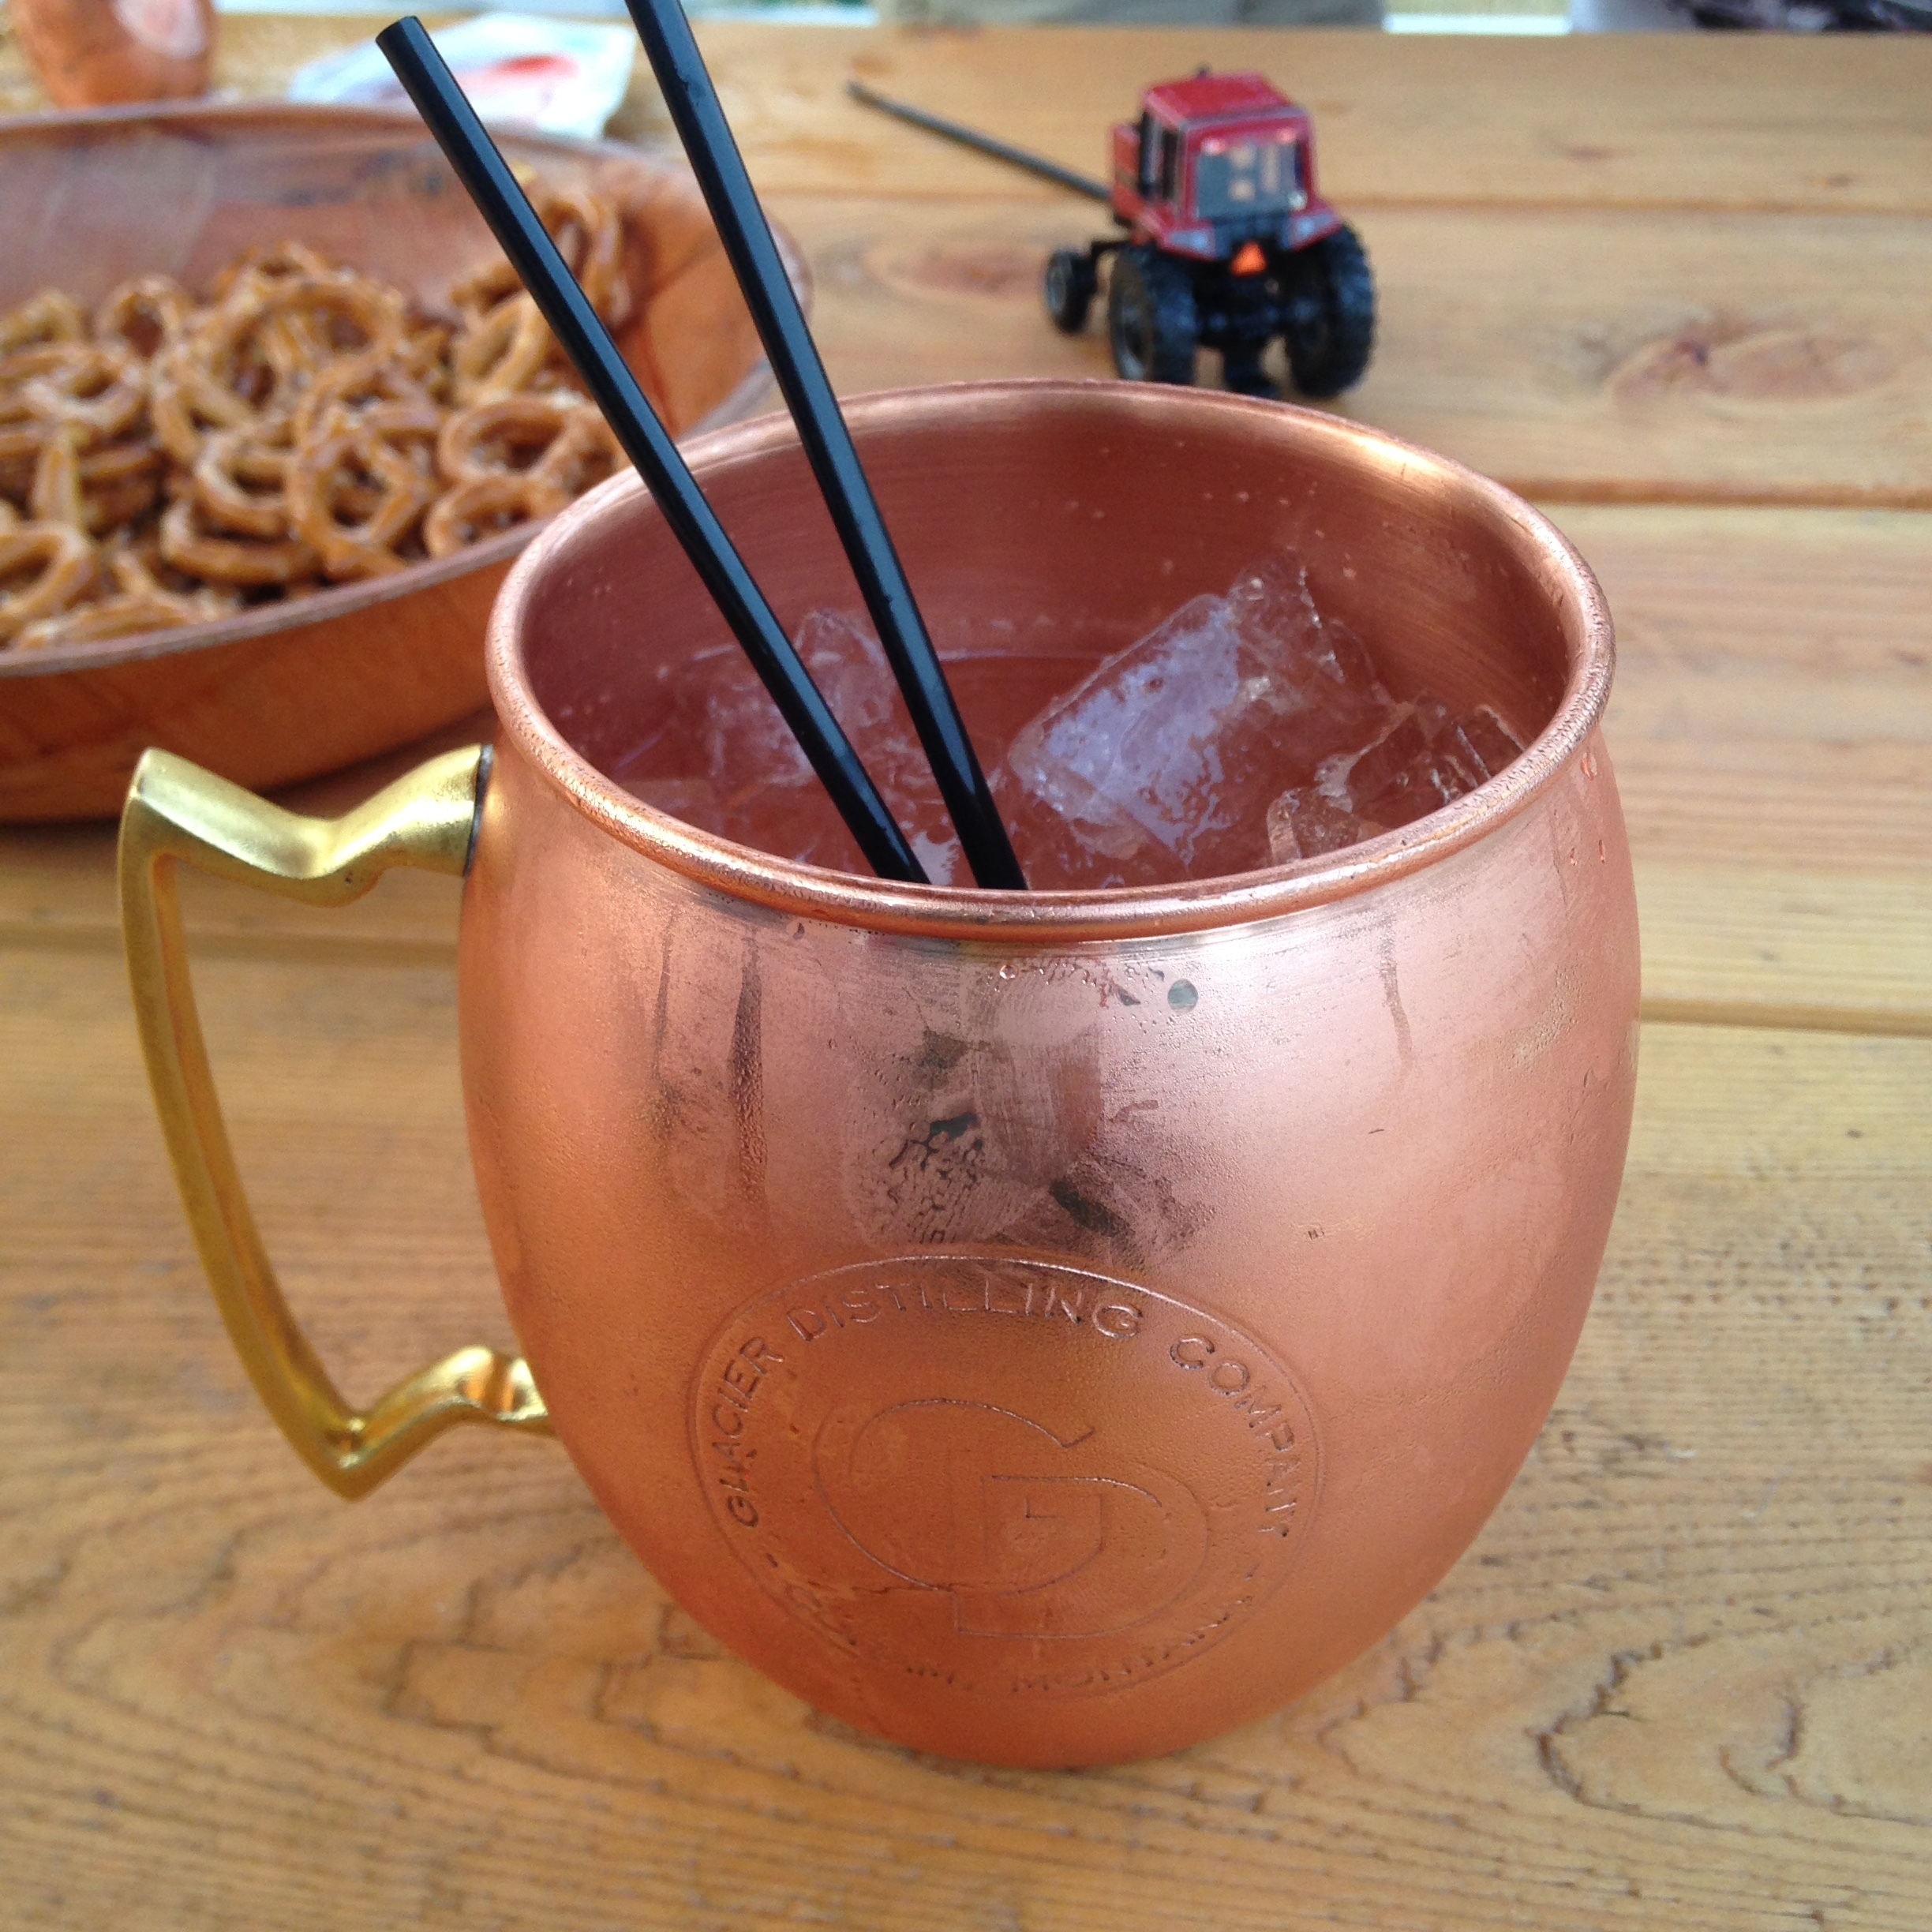 Montana Mule with necessary alcohol-absorbing pretzels behind.